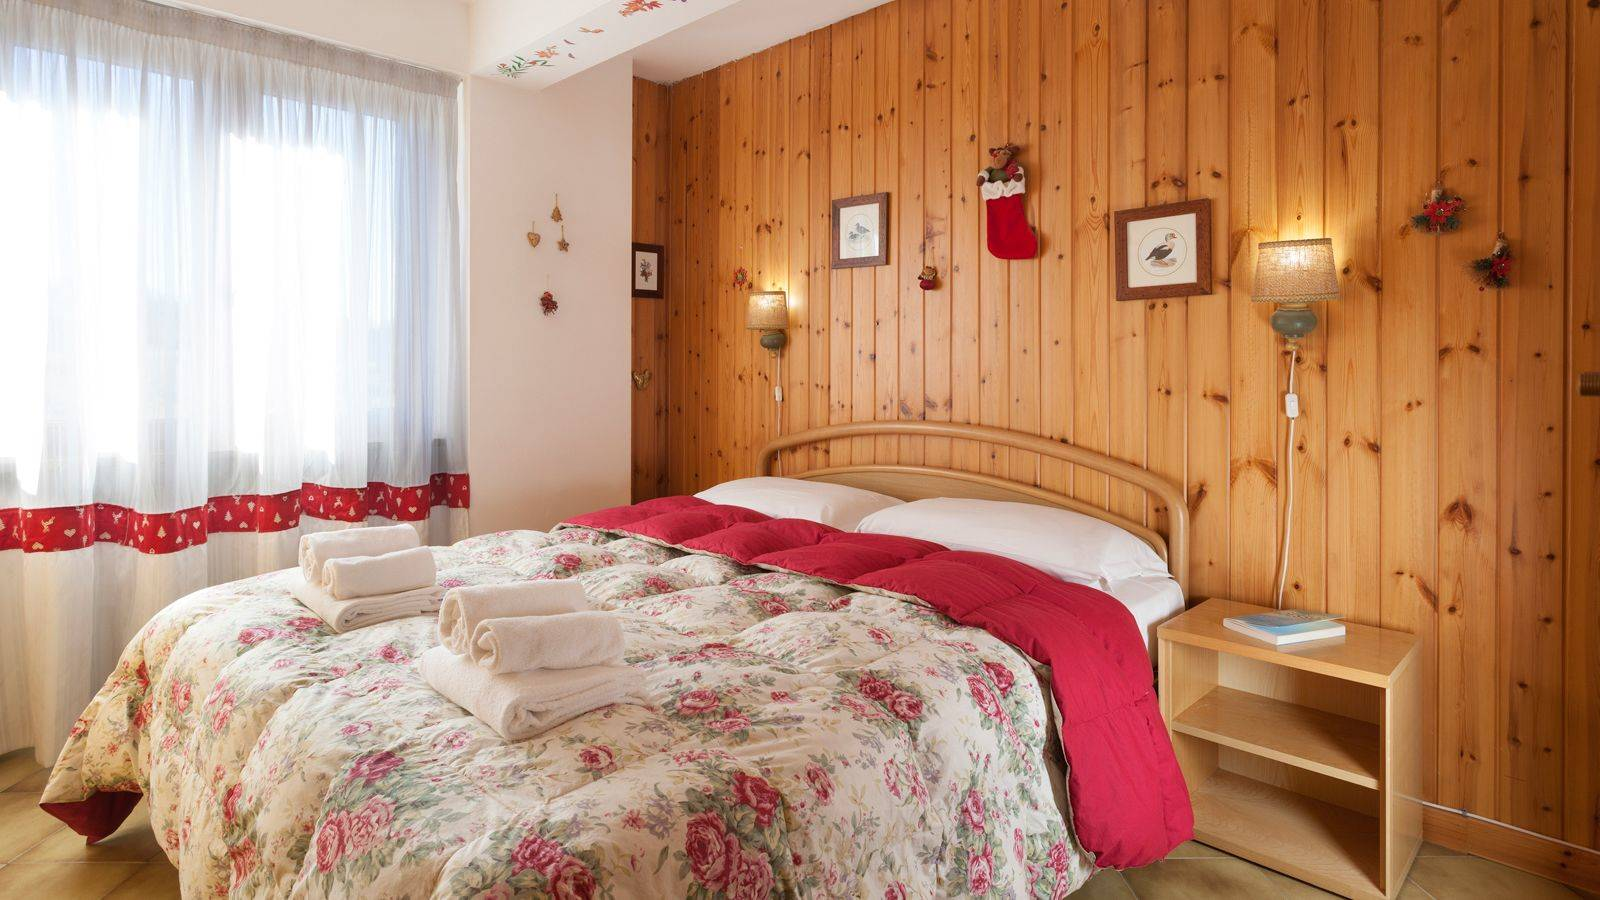 The bedroom of the Residence Rododendro in Passo San Pellegrino